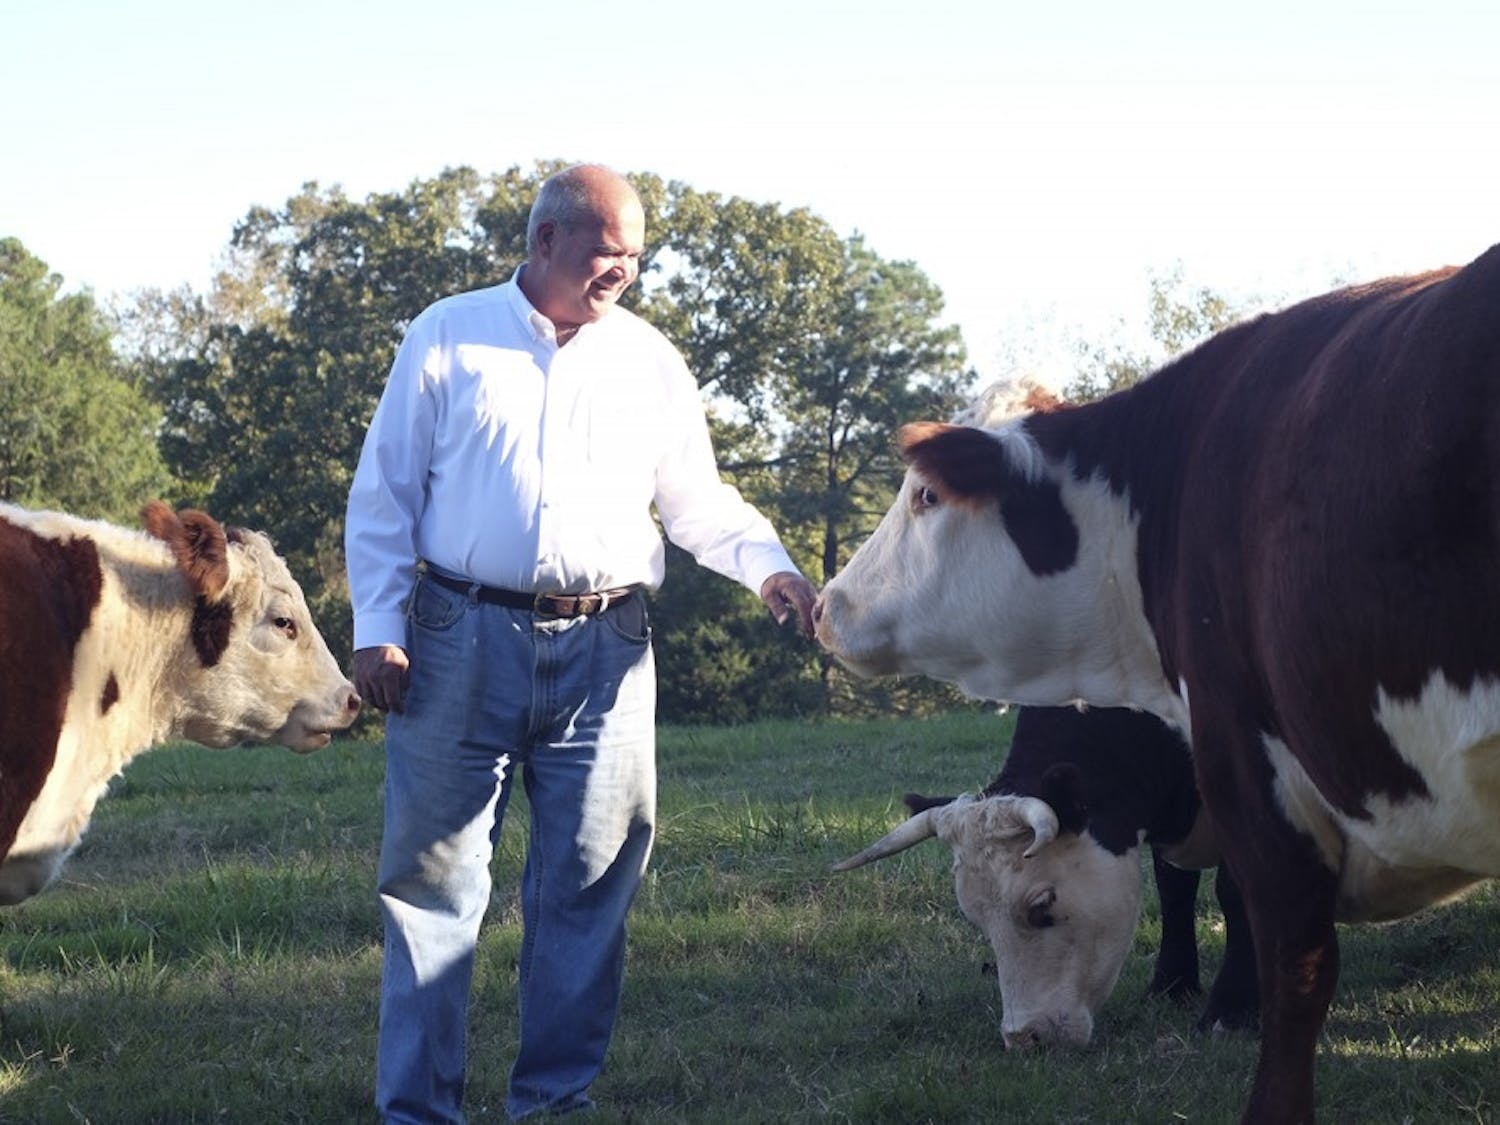 Chris Hogan poses with his cows while they feed on Thursday, Oct 22. Hogan says that the cows are more like pets than normal farm animals.